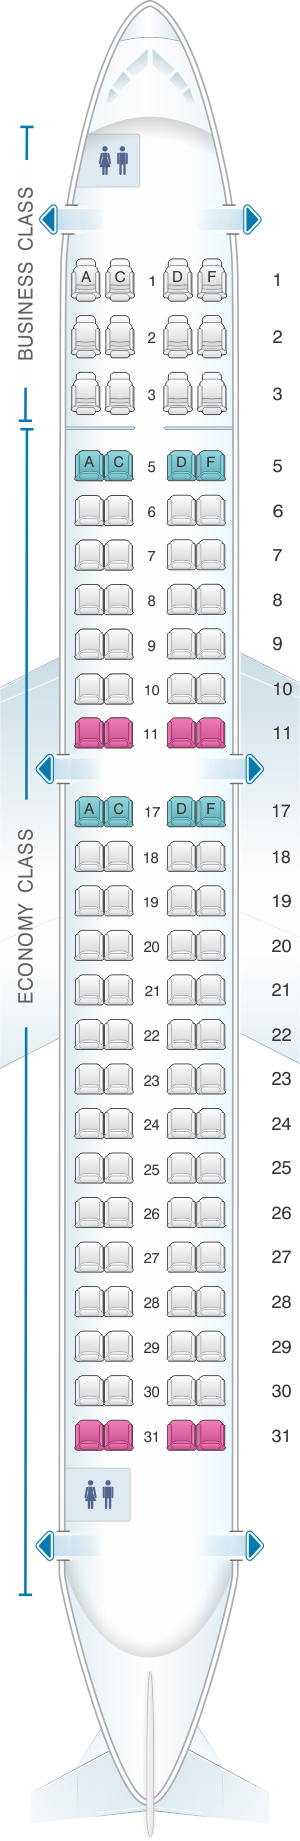 Seat map for Copa Airlines Embraer ERJ 190B